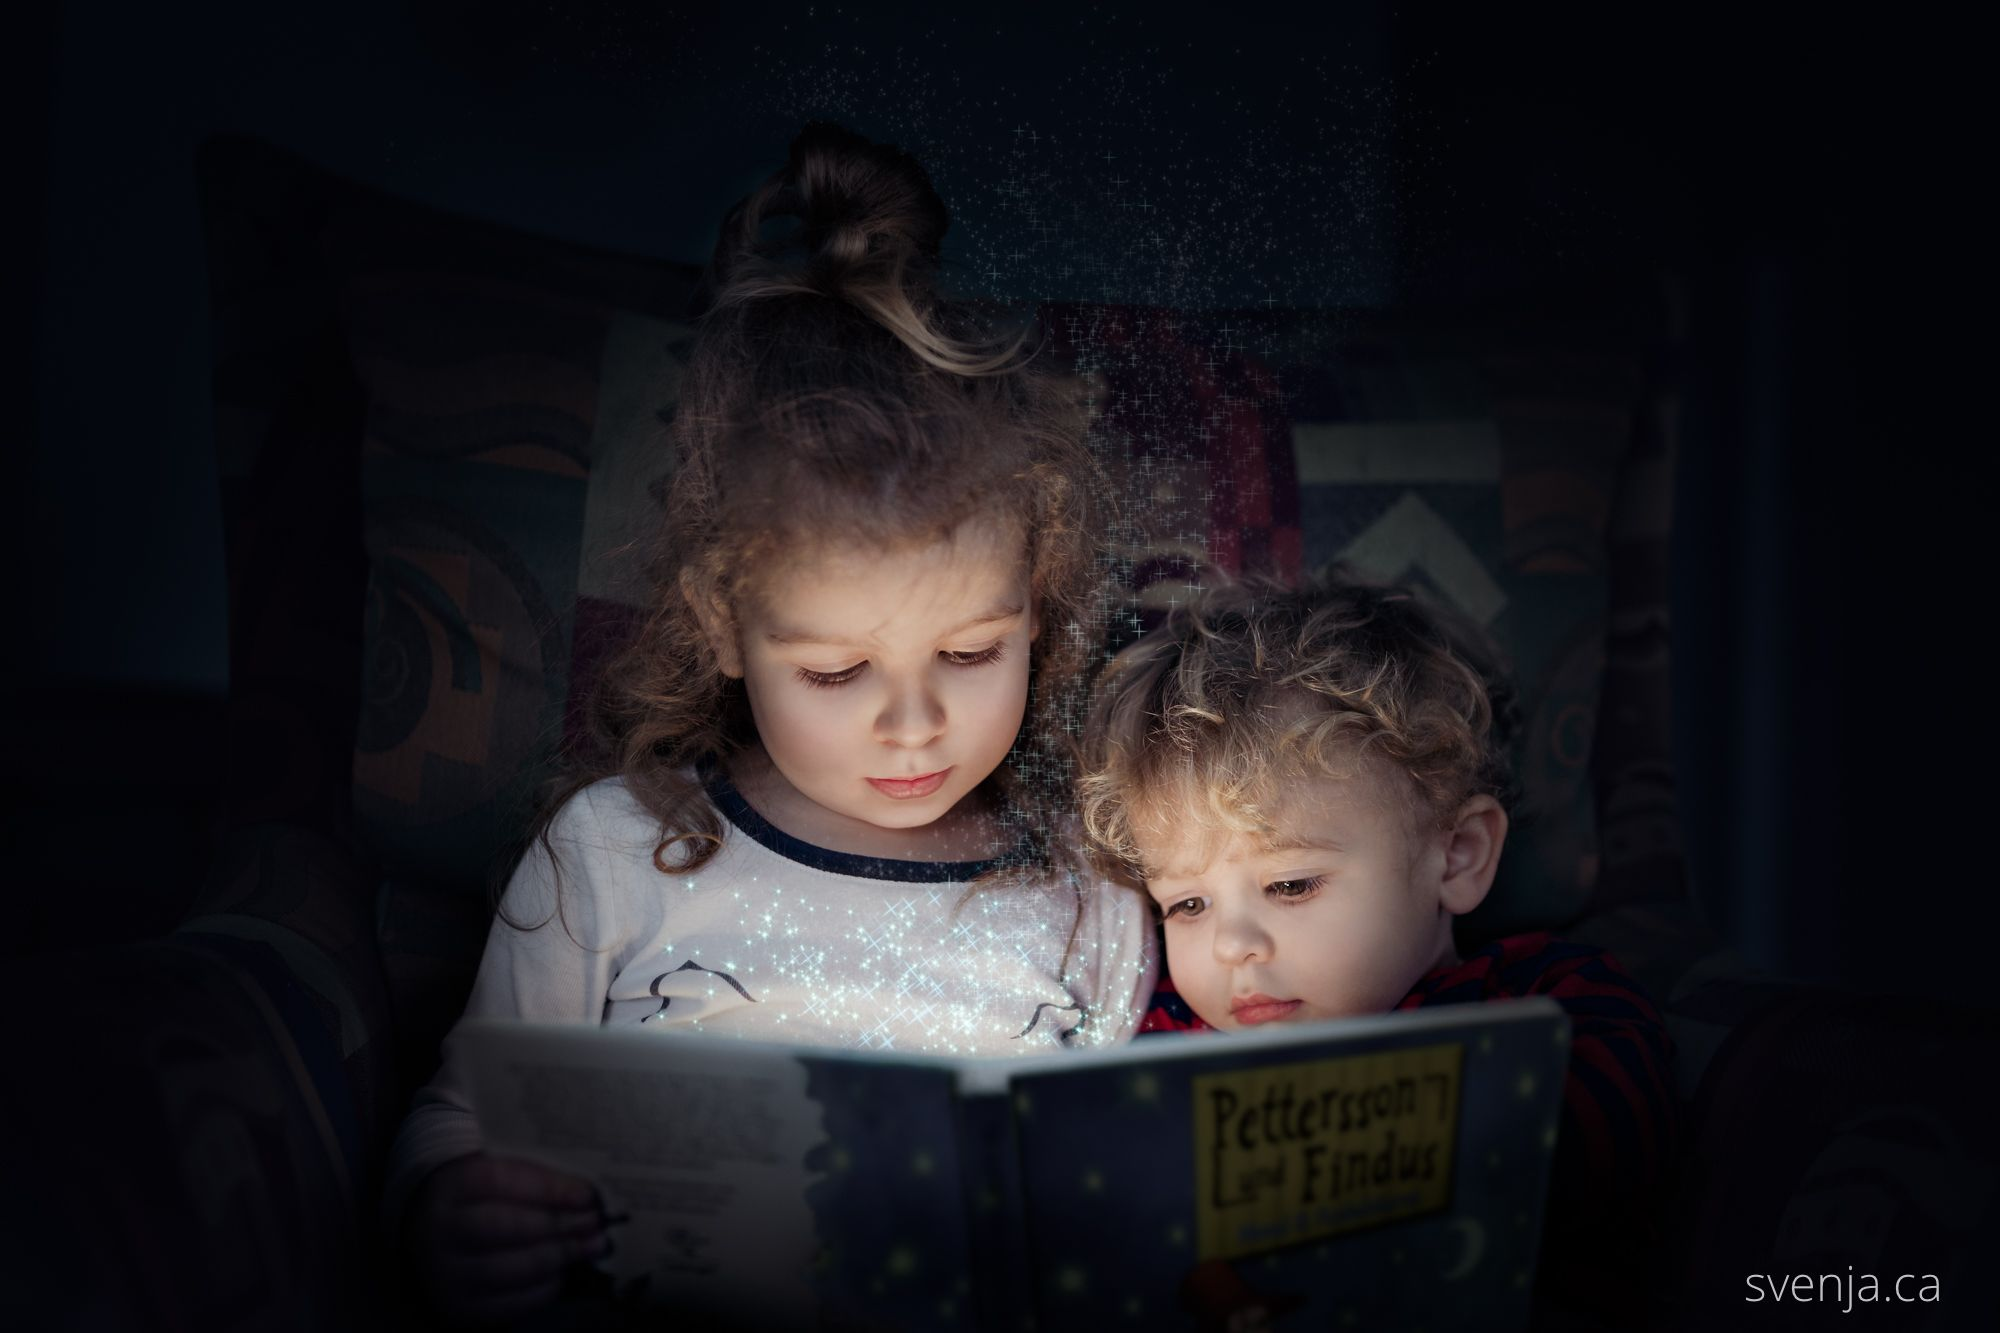 two young children sit on a chair and read a book together